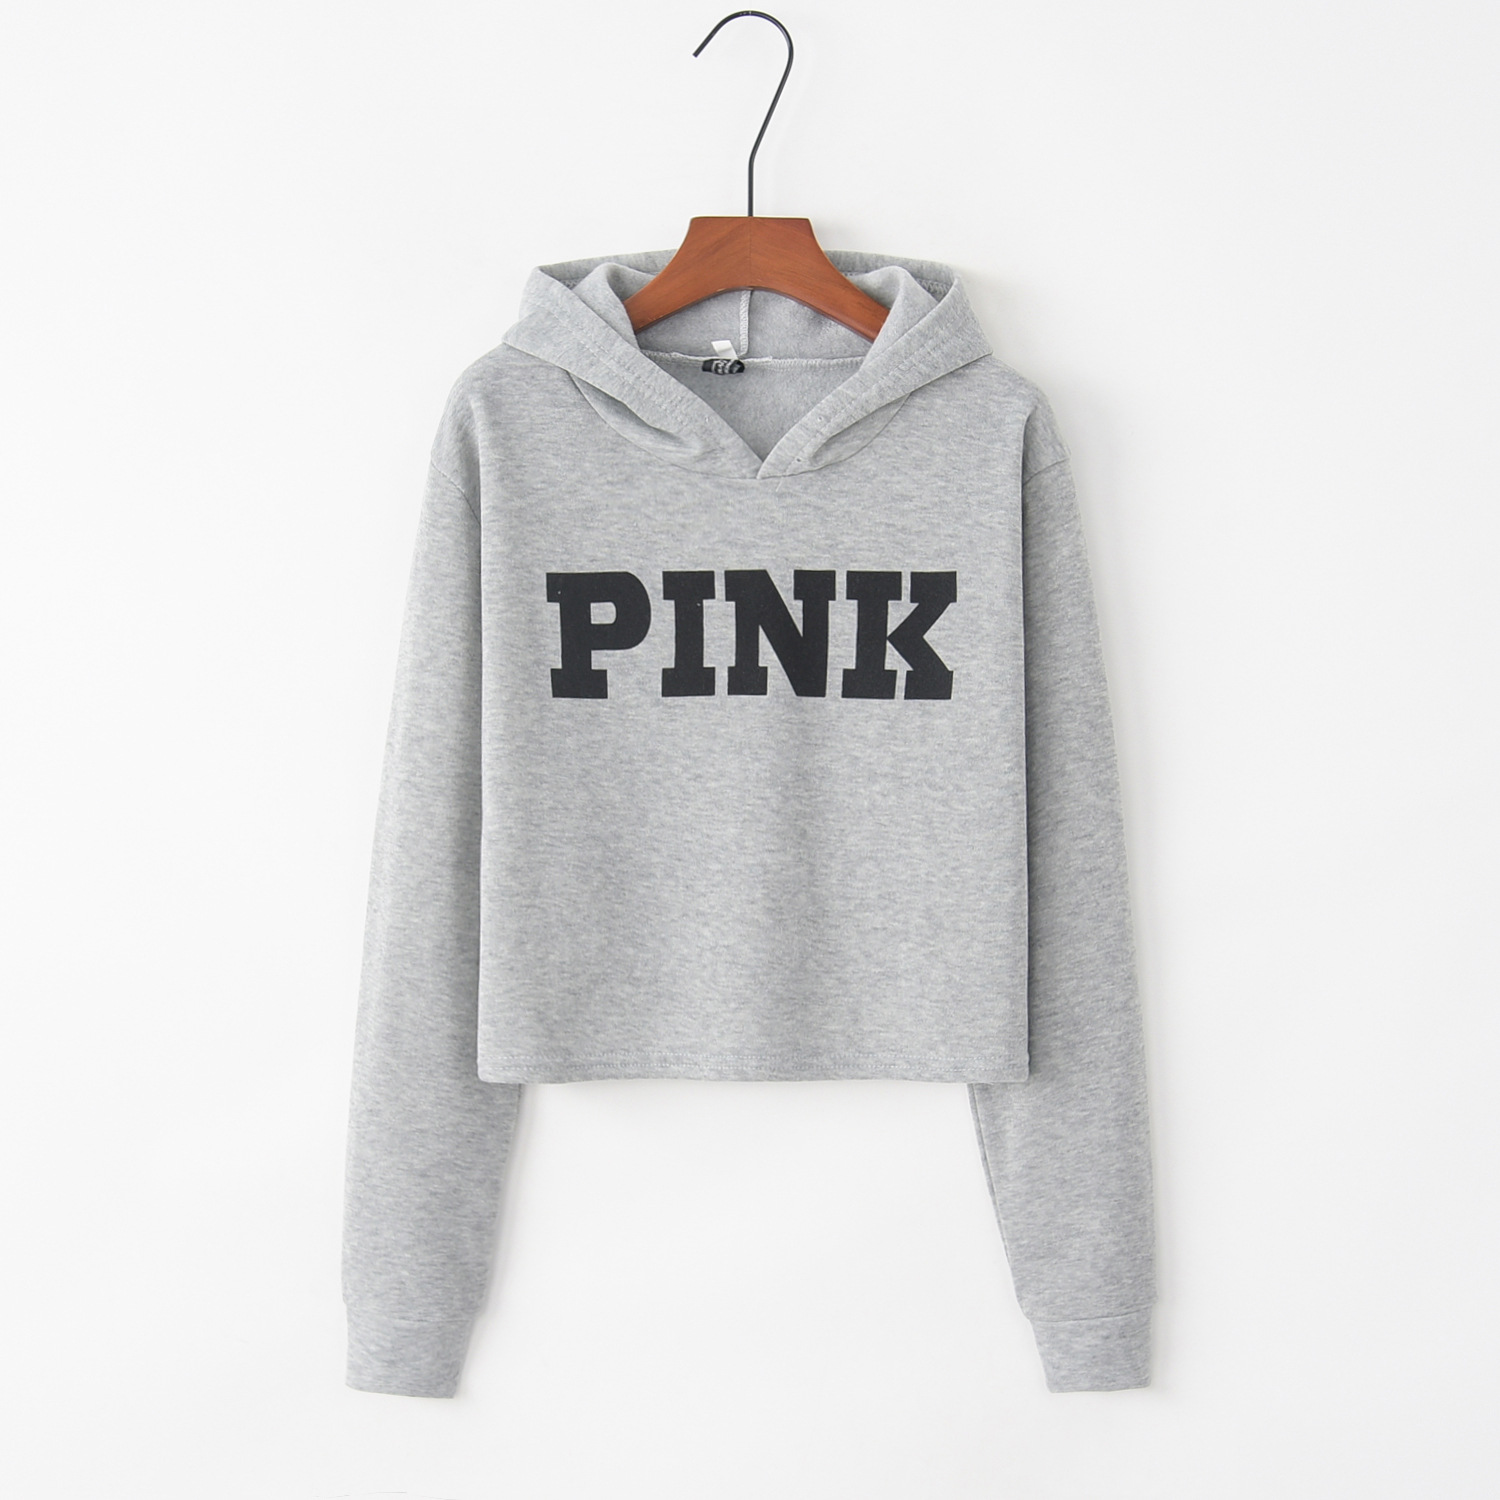 Letter Printed Pink 2020 New Design Hot Sale Hoodies Sweatshirts Women Casual Kawaii Harajuku Sweat Girls European Tops Korean